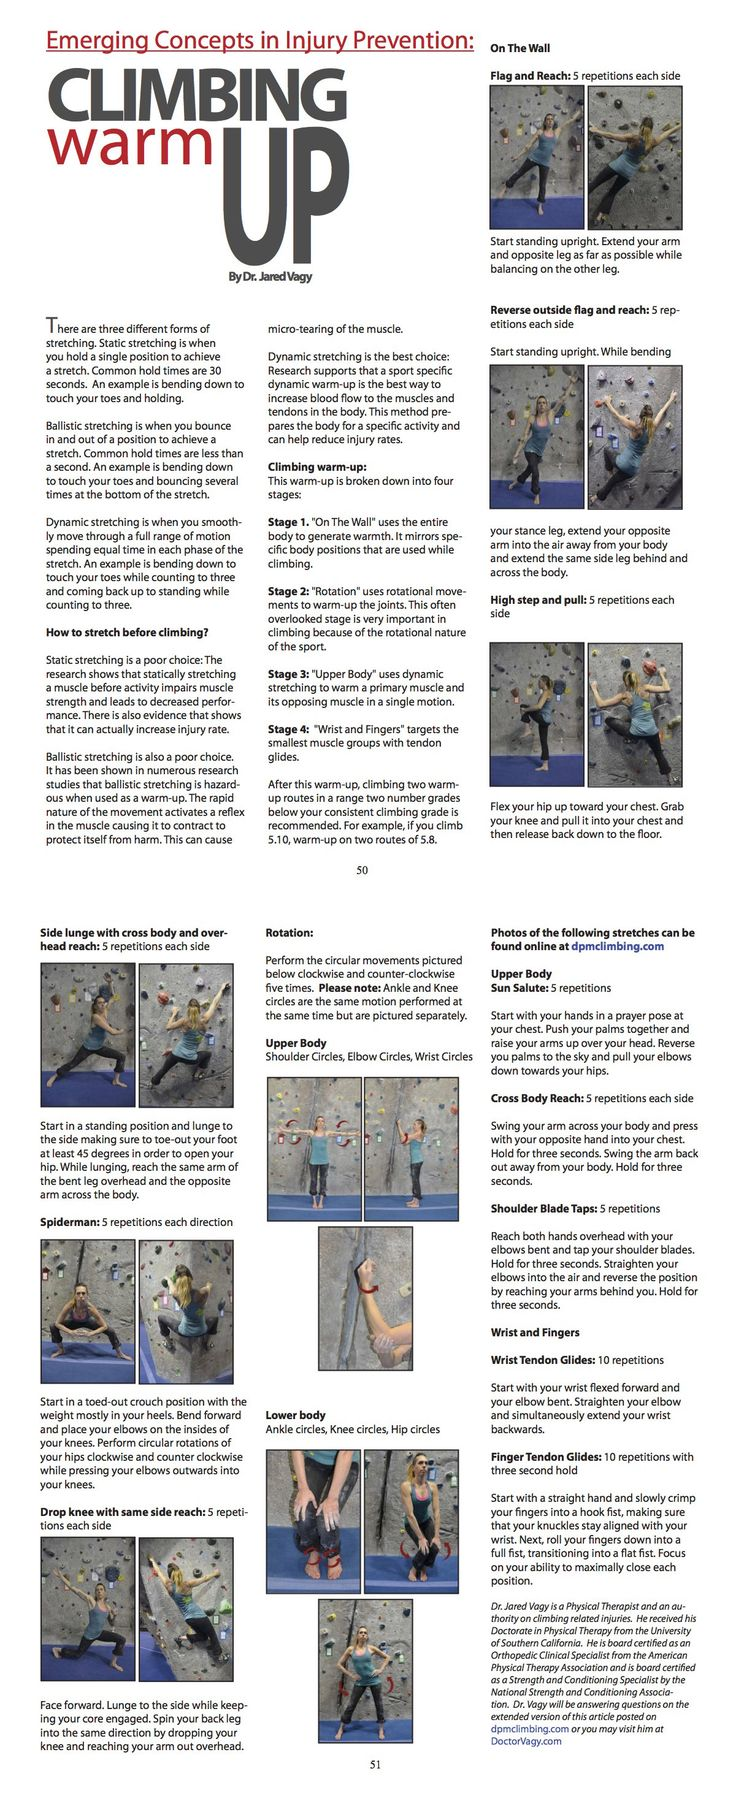 """This article shows you how to properly warm-up prior to climbing and is based on the latest research.  The warm-up is broken into four stages.  The first stage is """"on the wall"""" and uses the entire body to generate warmth while mirroring climbing positions.  The second stage is """"rotation"""" which uses circular movements to warm-up the joints.  There third stage is """"upper body"""" which uses dynamic stretching to warm-up the primary muscles used climbing.  The fourth stage is """"wrists and fingers""""…"""